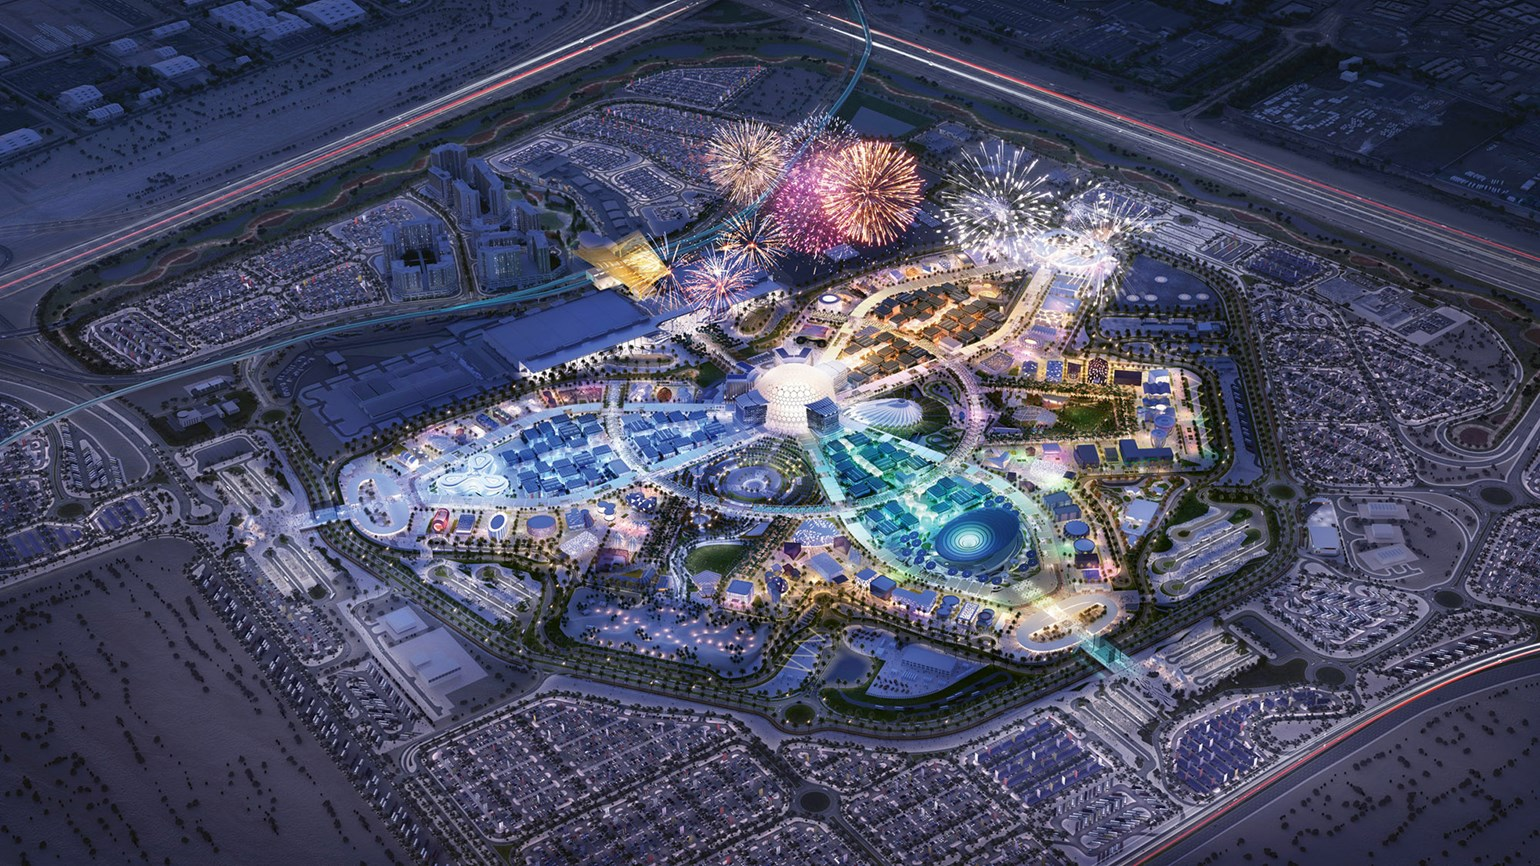 'World's Greatest Show' a chance for UAE, region to shine